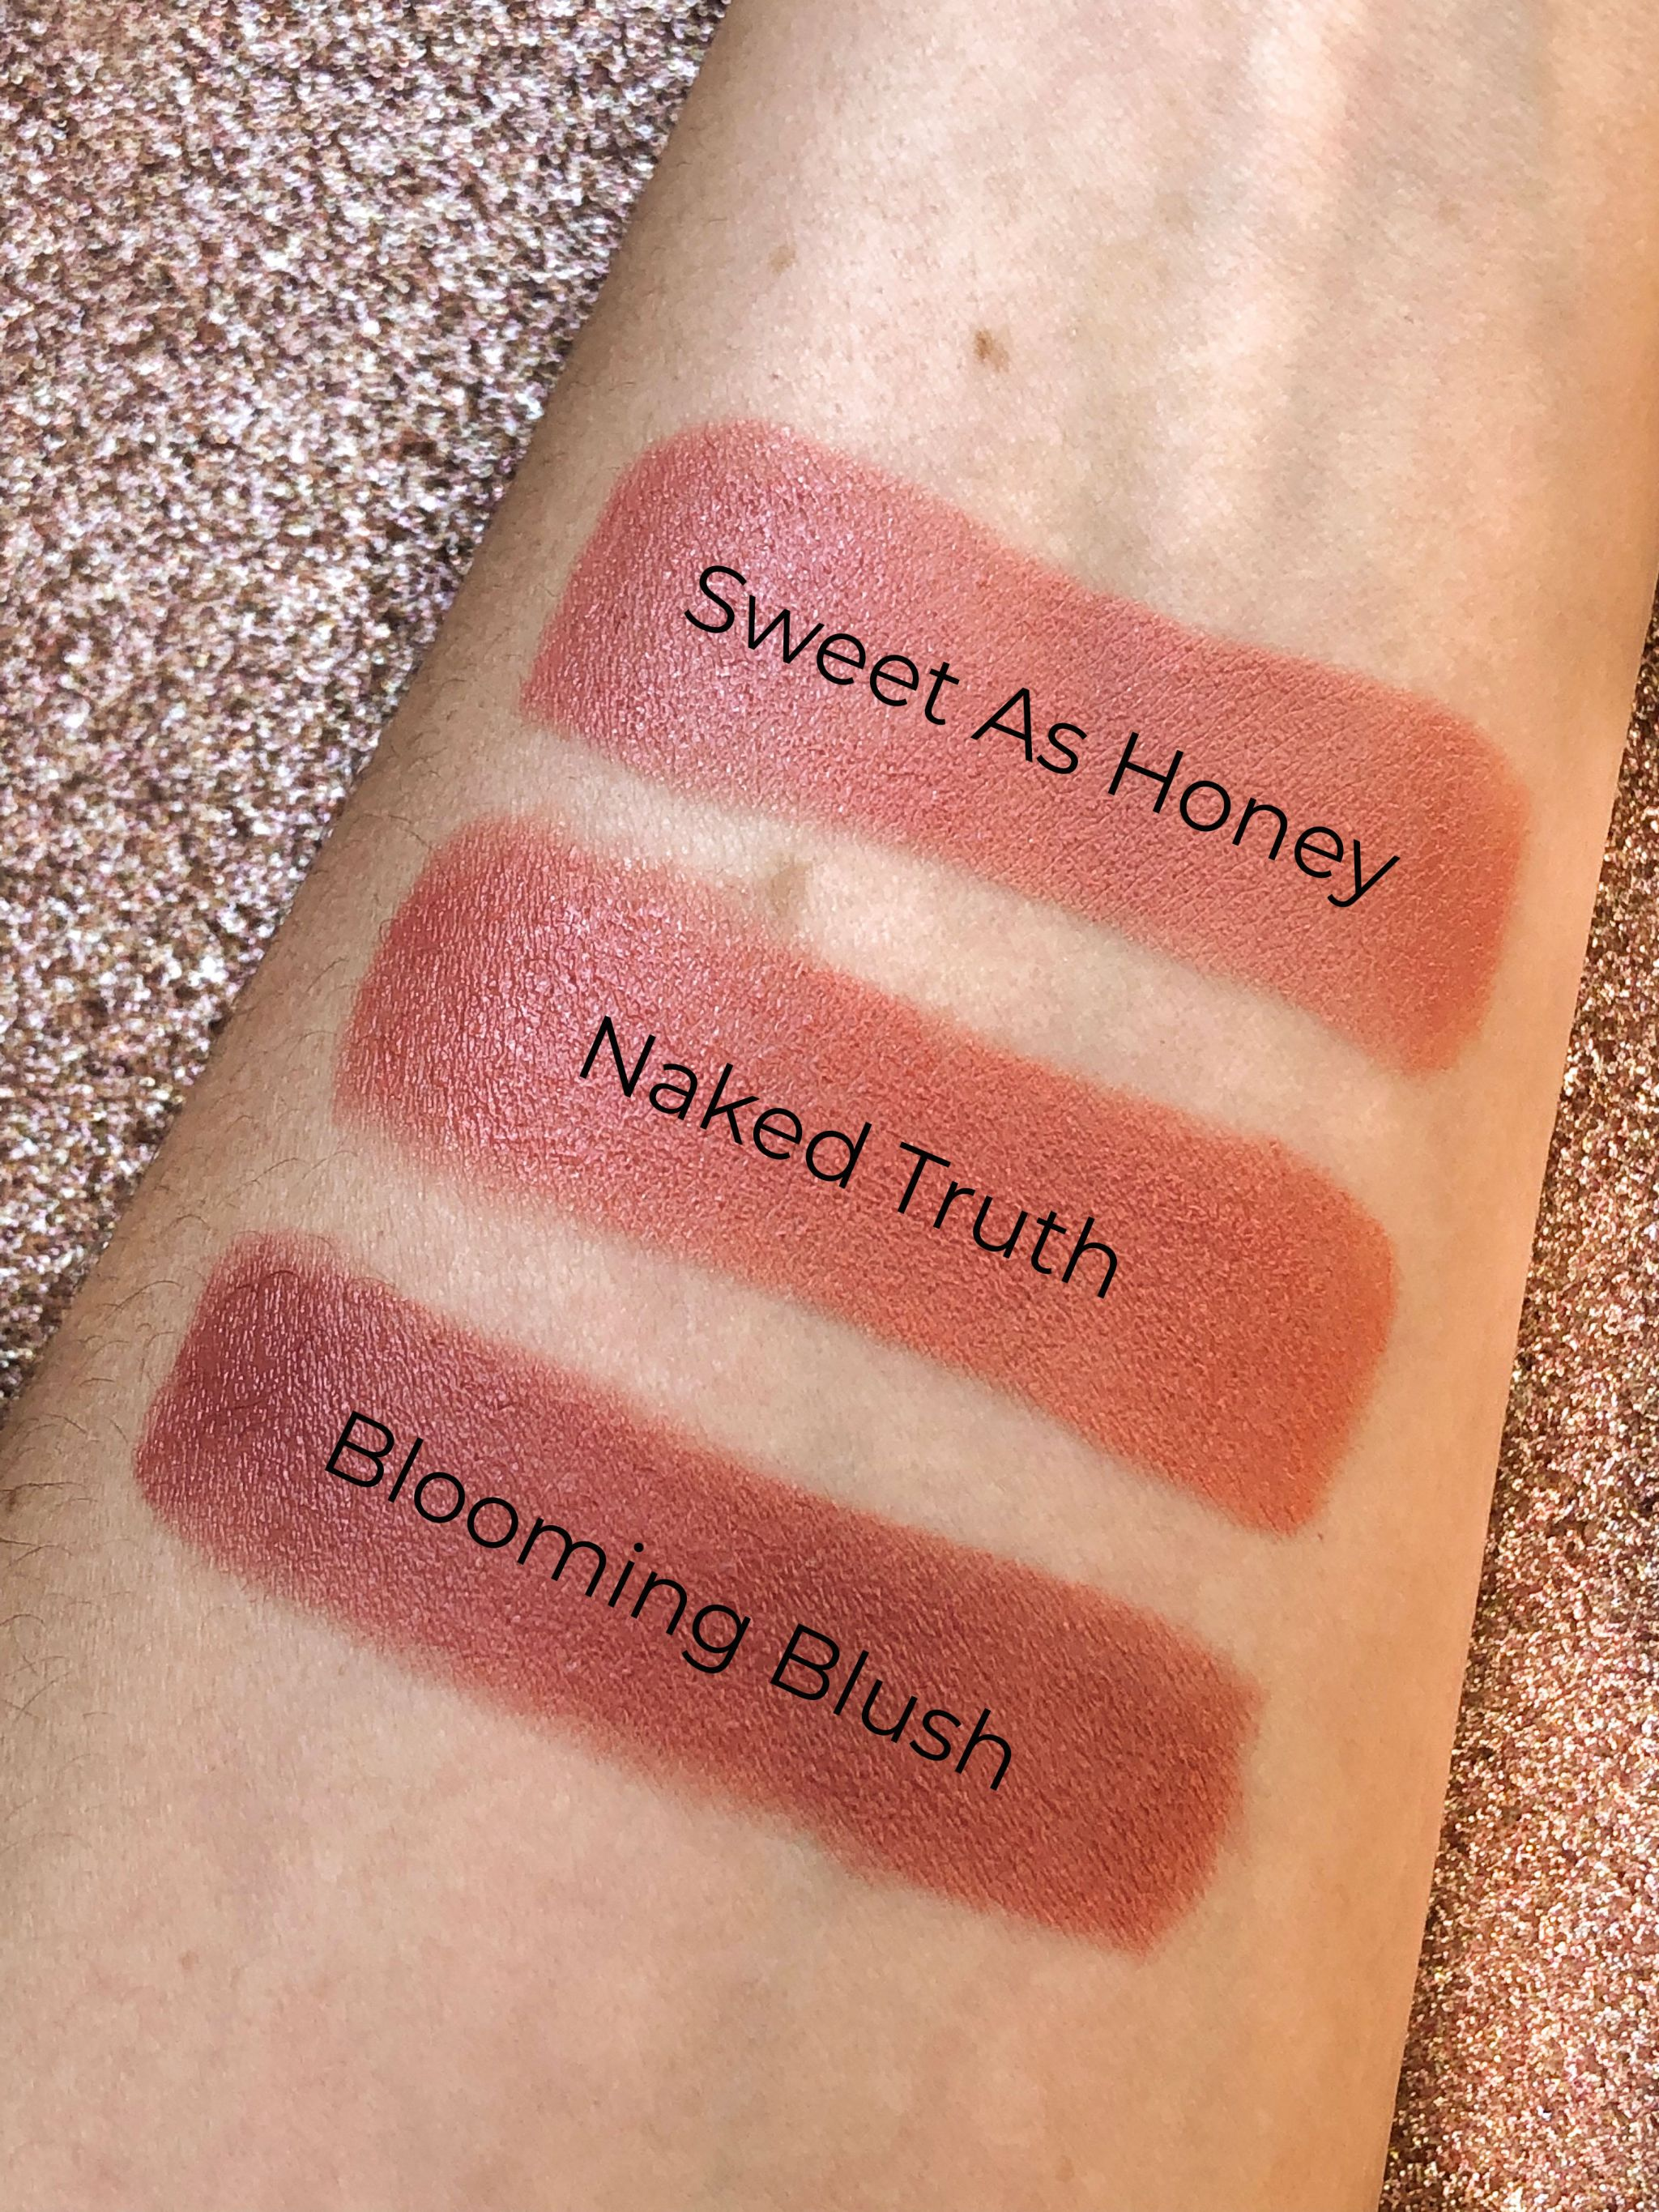 Lipstick Queen Nothing But The Nudes Swatch, Blooming Blush, Sweet as Honey, Naked Truth